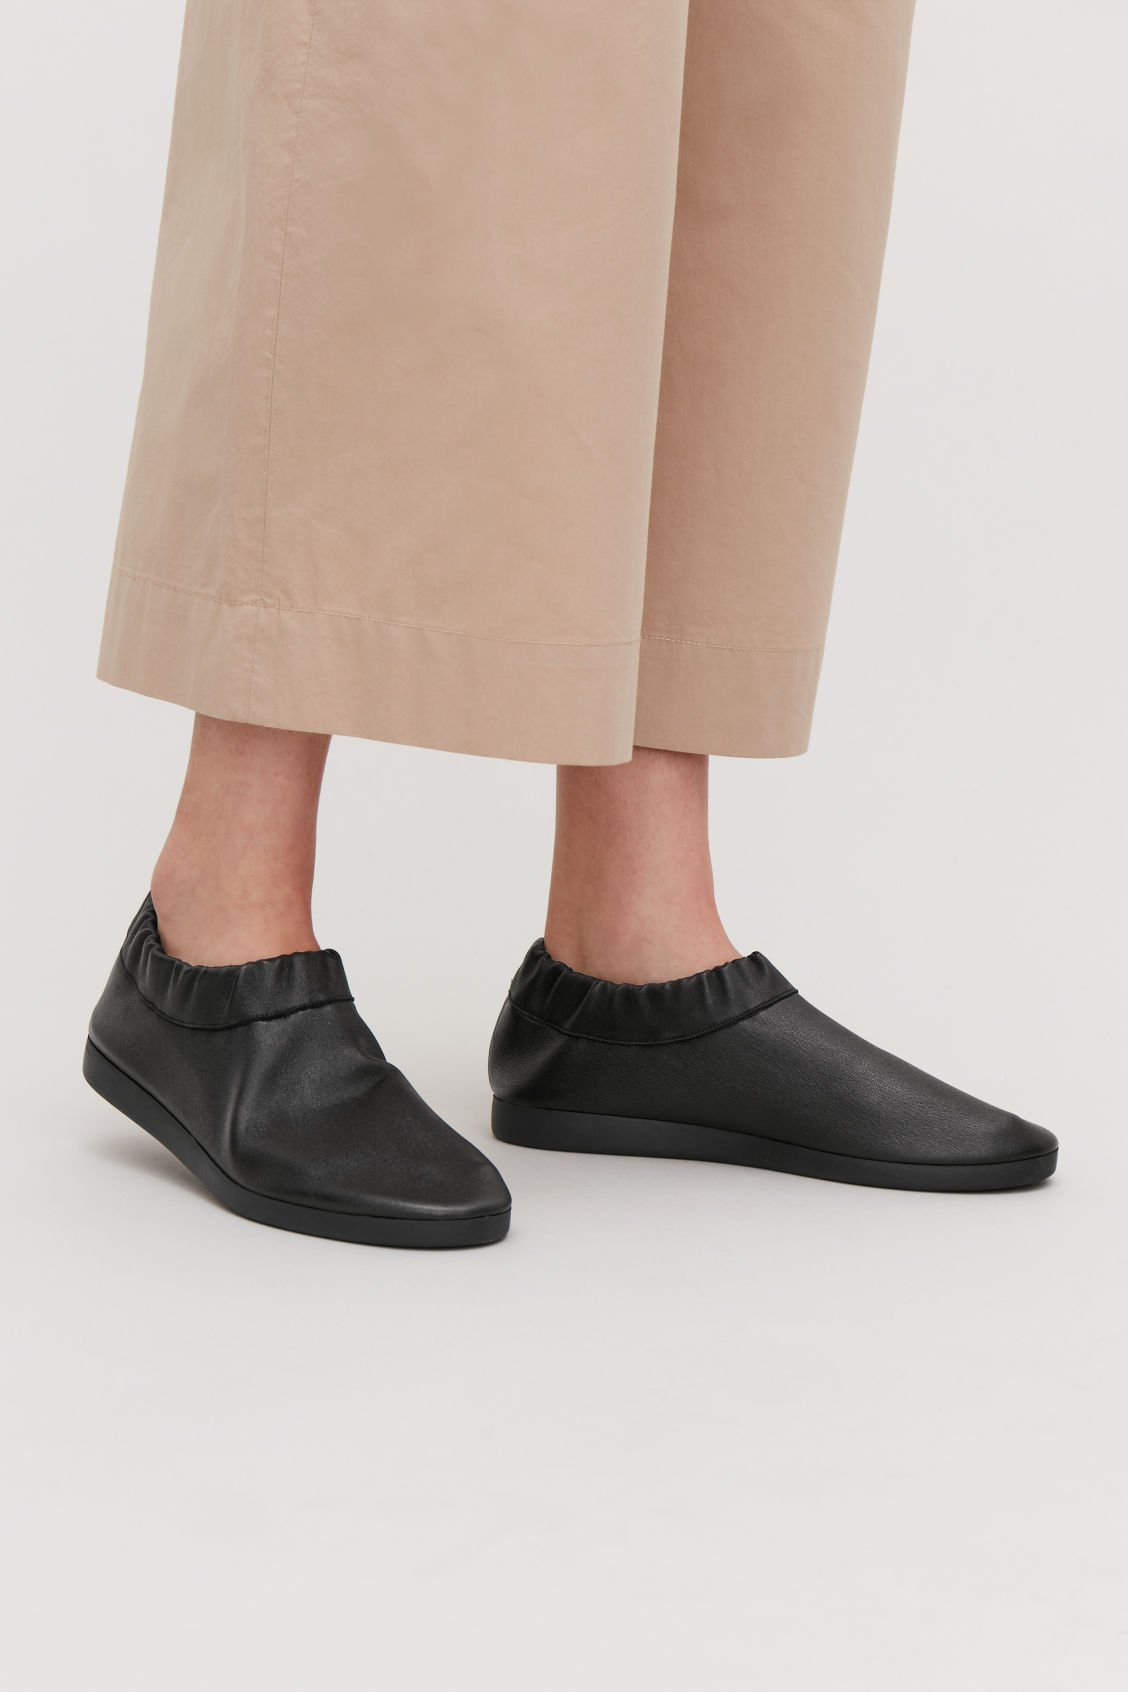 Detailed image of Cos slip-on leather sneakers in black